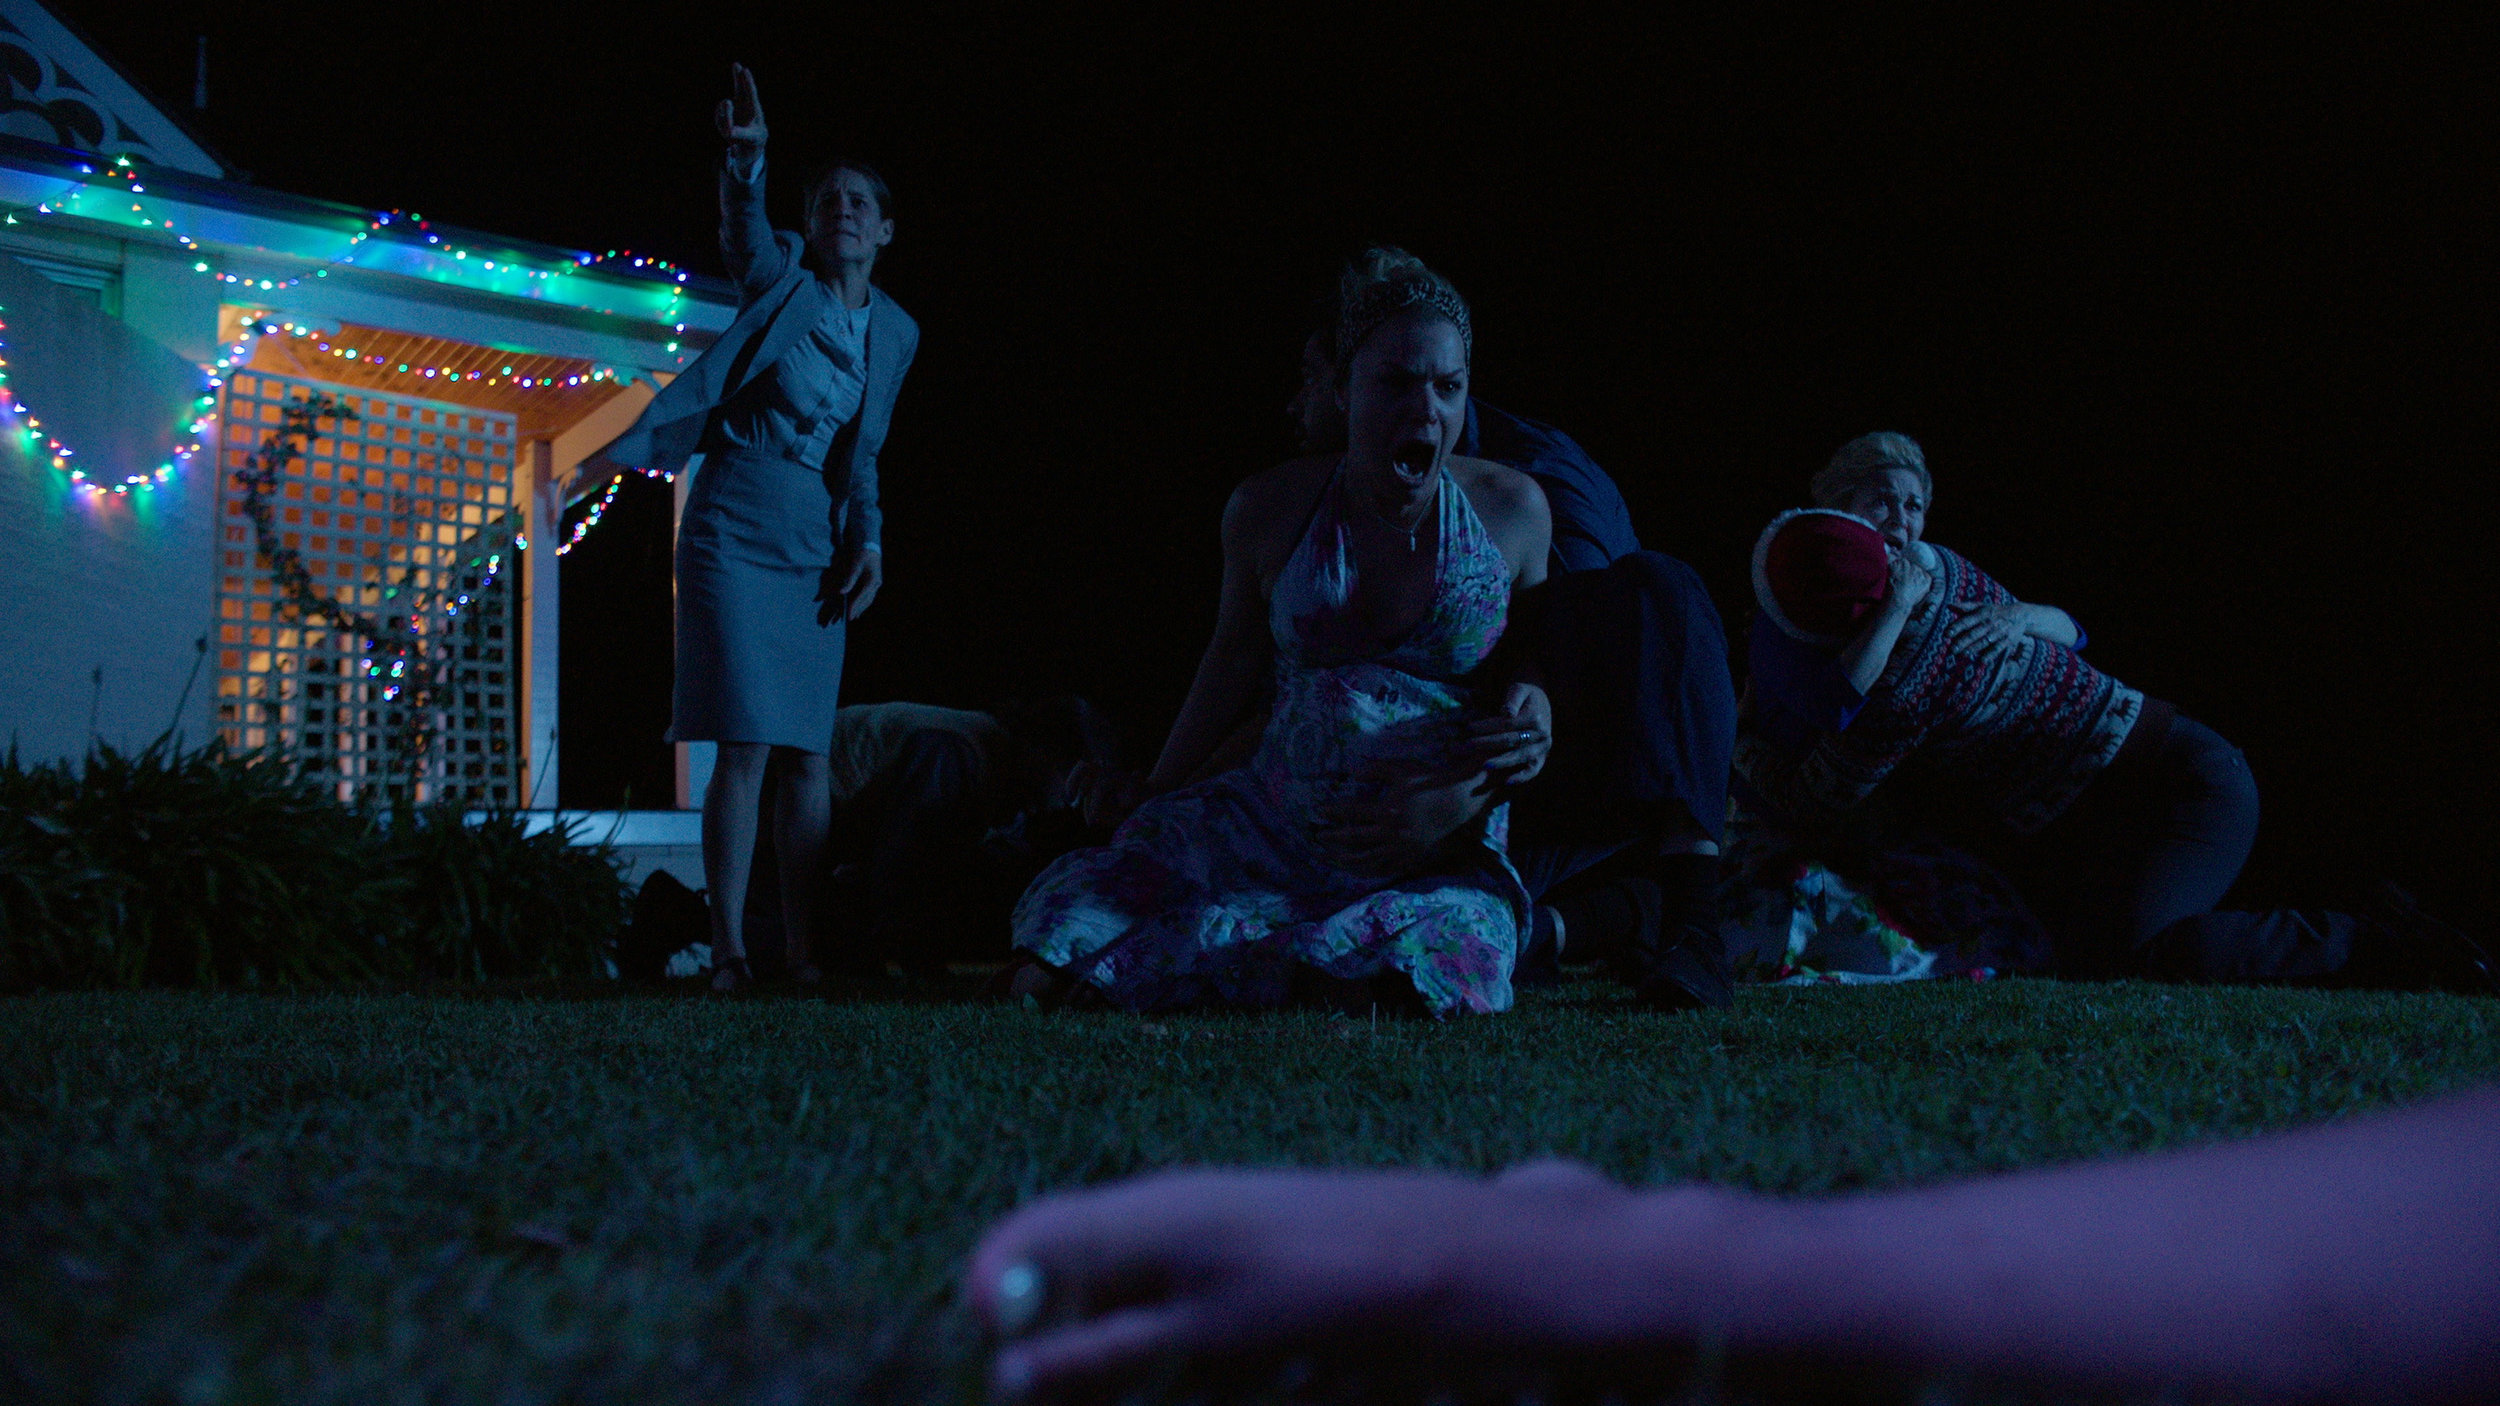 The film stars (and was co-produced by) horror film acting legend, Dee Wallace (The Hills Have Eyes,The Howling,E.T., Cujo, Critters, Halloween,The Lords of Salem)as the mother of a squabbling family, gathered together in a remote Outback estate on Christmas Eve. When a mysterious, deformed young man named Cletus appears at their door, things soon go from petty insults to bloody, imaginatively orchestrated violence as Wallace attempts to protect her family from the vengeful intruder. The film deliriously infuses comedy, dark family secrets with outlandish gore and adds the always controversial subject of abortion in its blood-stained mix.